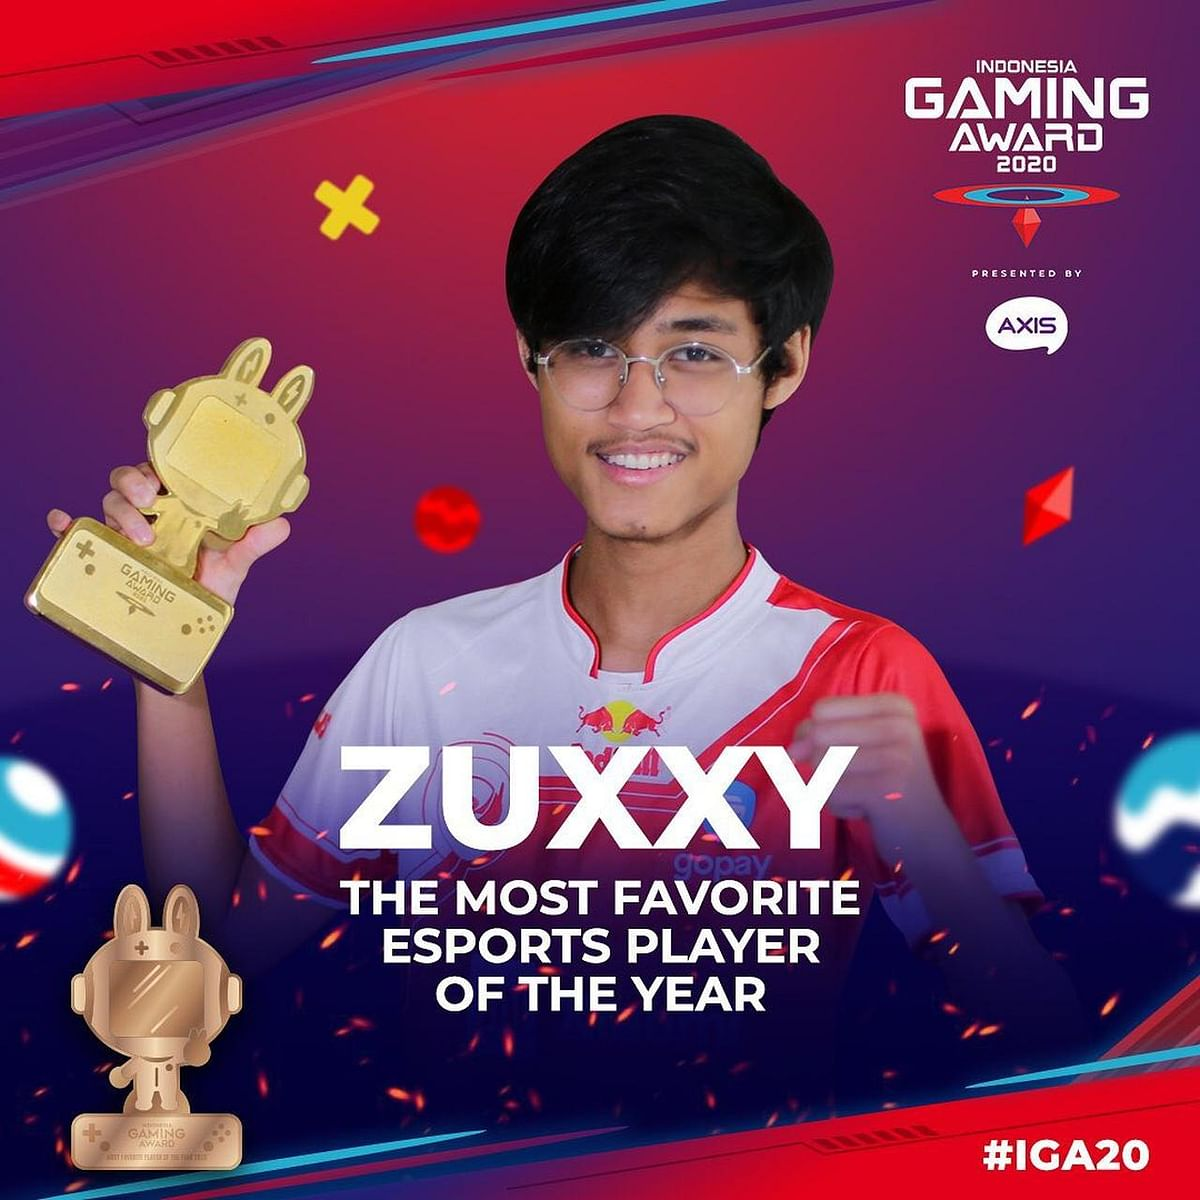 PUBG Mobile and BTR Zuxxy Won Awards at the Indonesia Gaming Award 2020